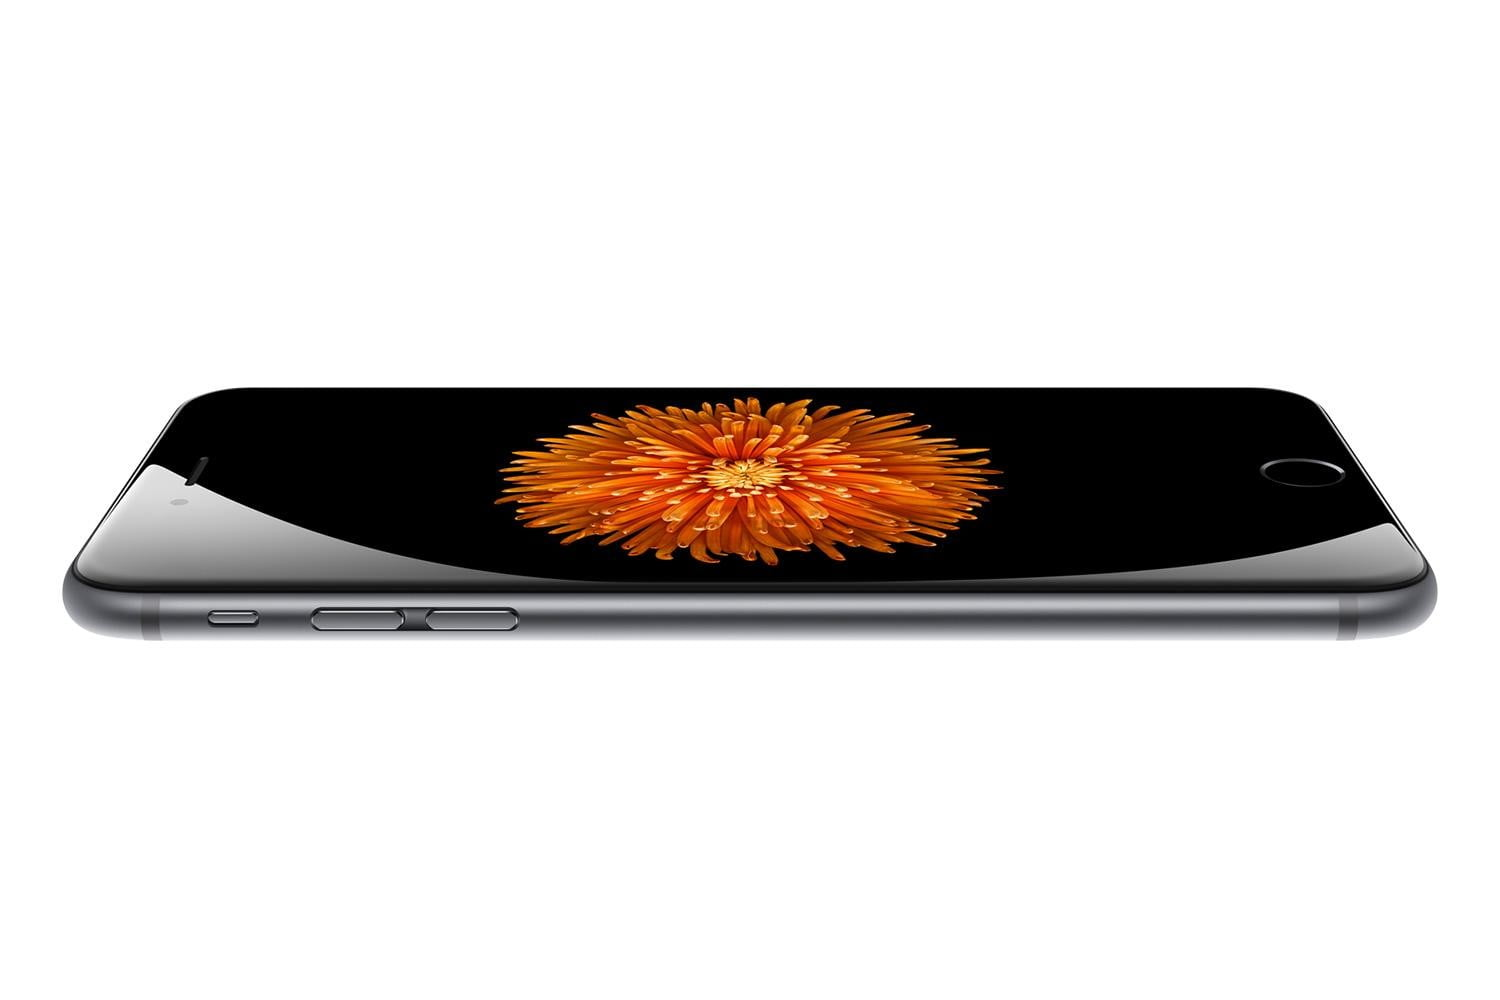 iphone 6 air features release rumors left